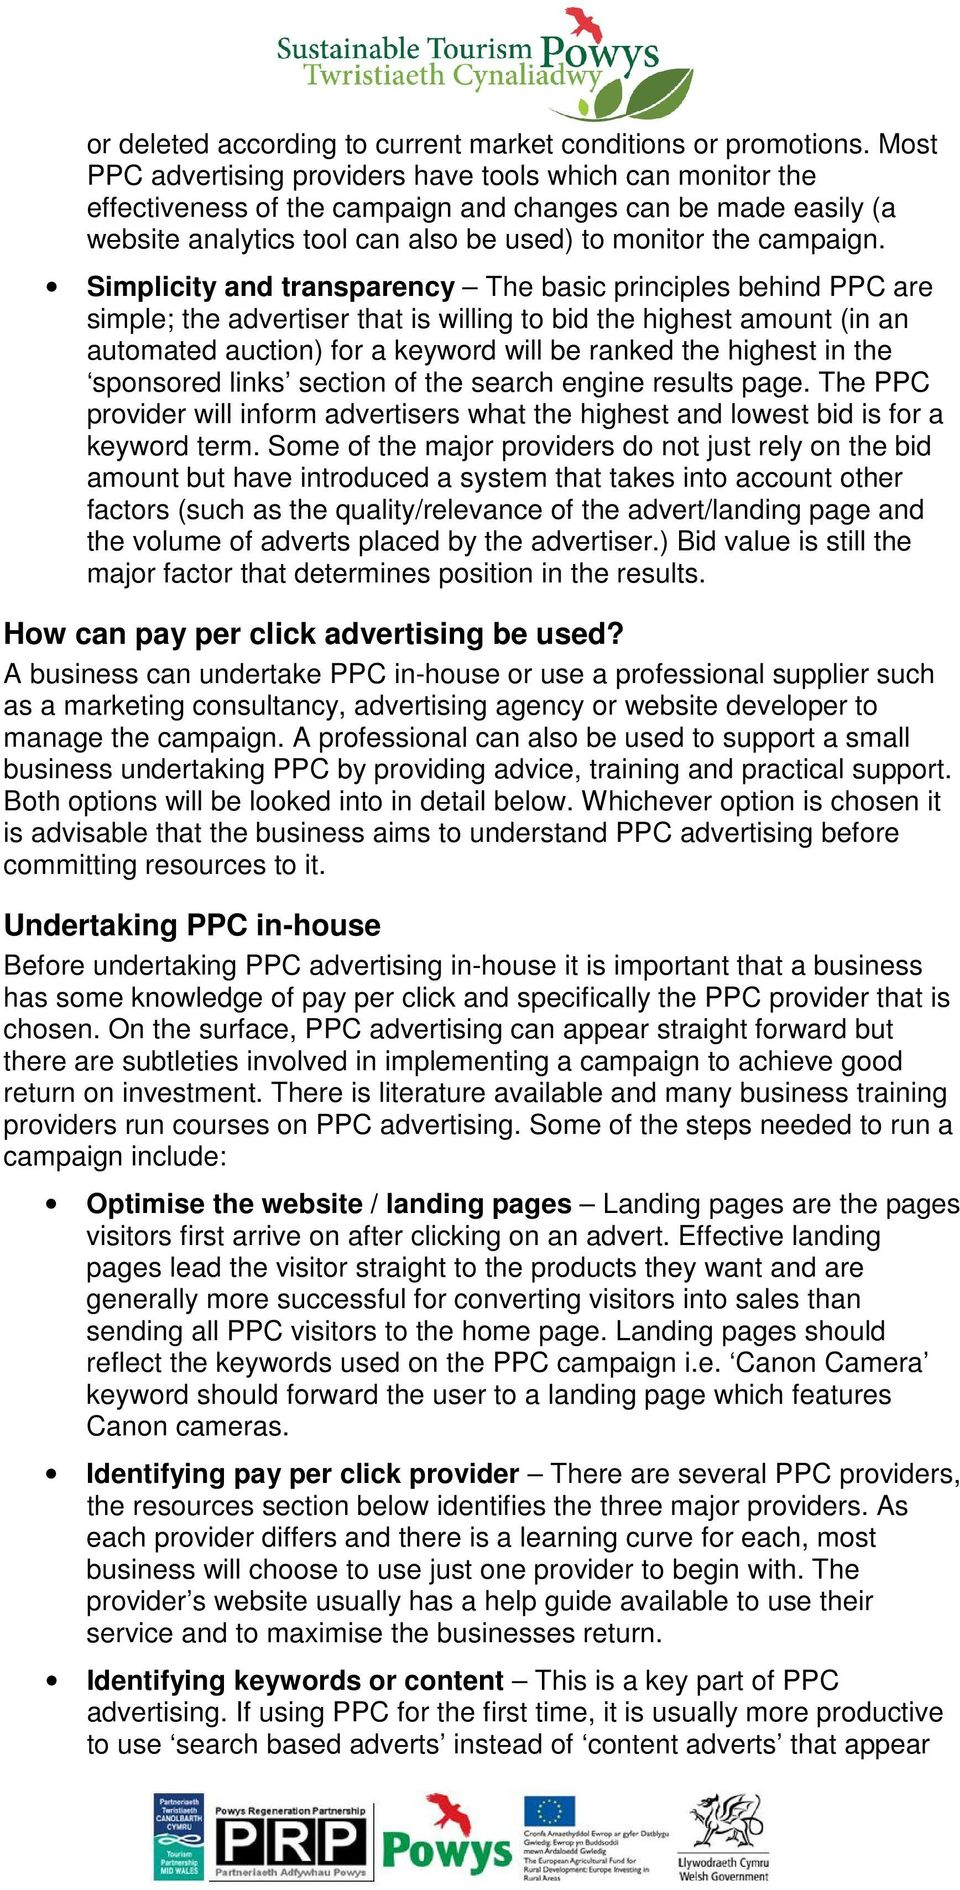 Simplicity and transparency The basic principles behind PPC are simple; the advertiser that is willing to bid the highest amount (in an automated auction) for a keyword will be ranked the highest in